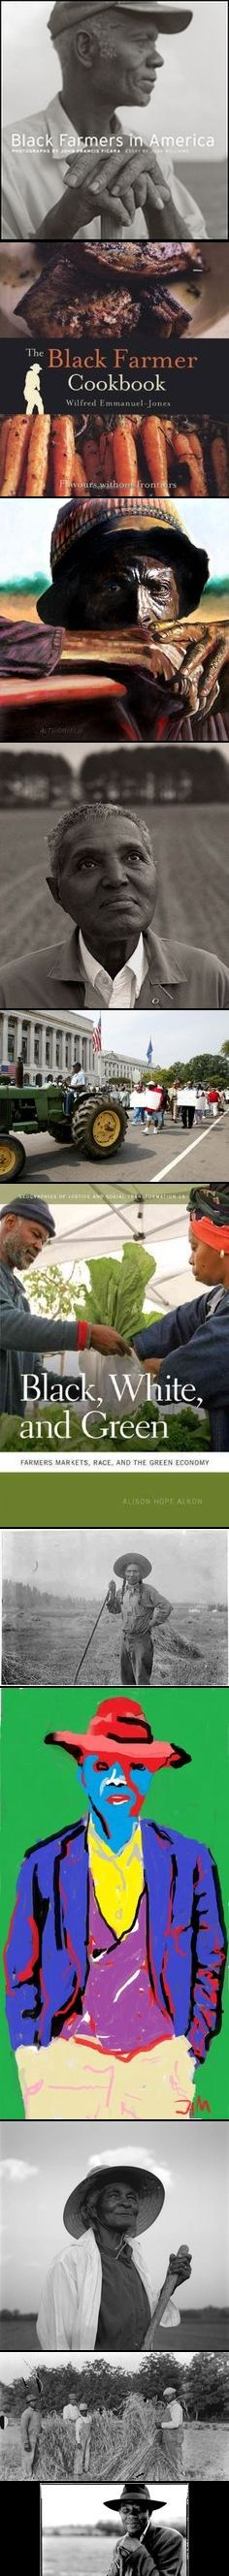 After years of protests & lawsuits black farmers in the south will begin receiving payments this week as a result of a $1.2 billion settlement in their discrimination case against federal agriculture officials. (18,000 farmers) Thousands received payments in 1999 as part of a settlement in a class-action suit over allegations of widespread discrimination by federal officials who denied loans & other assistance to black farmers because of their race.